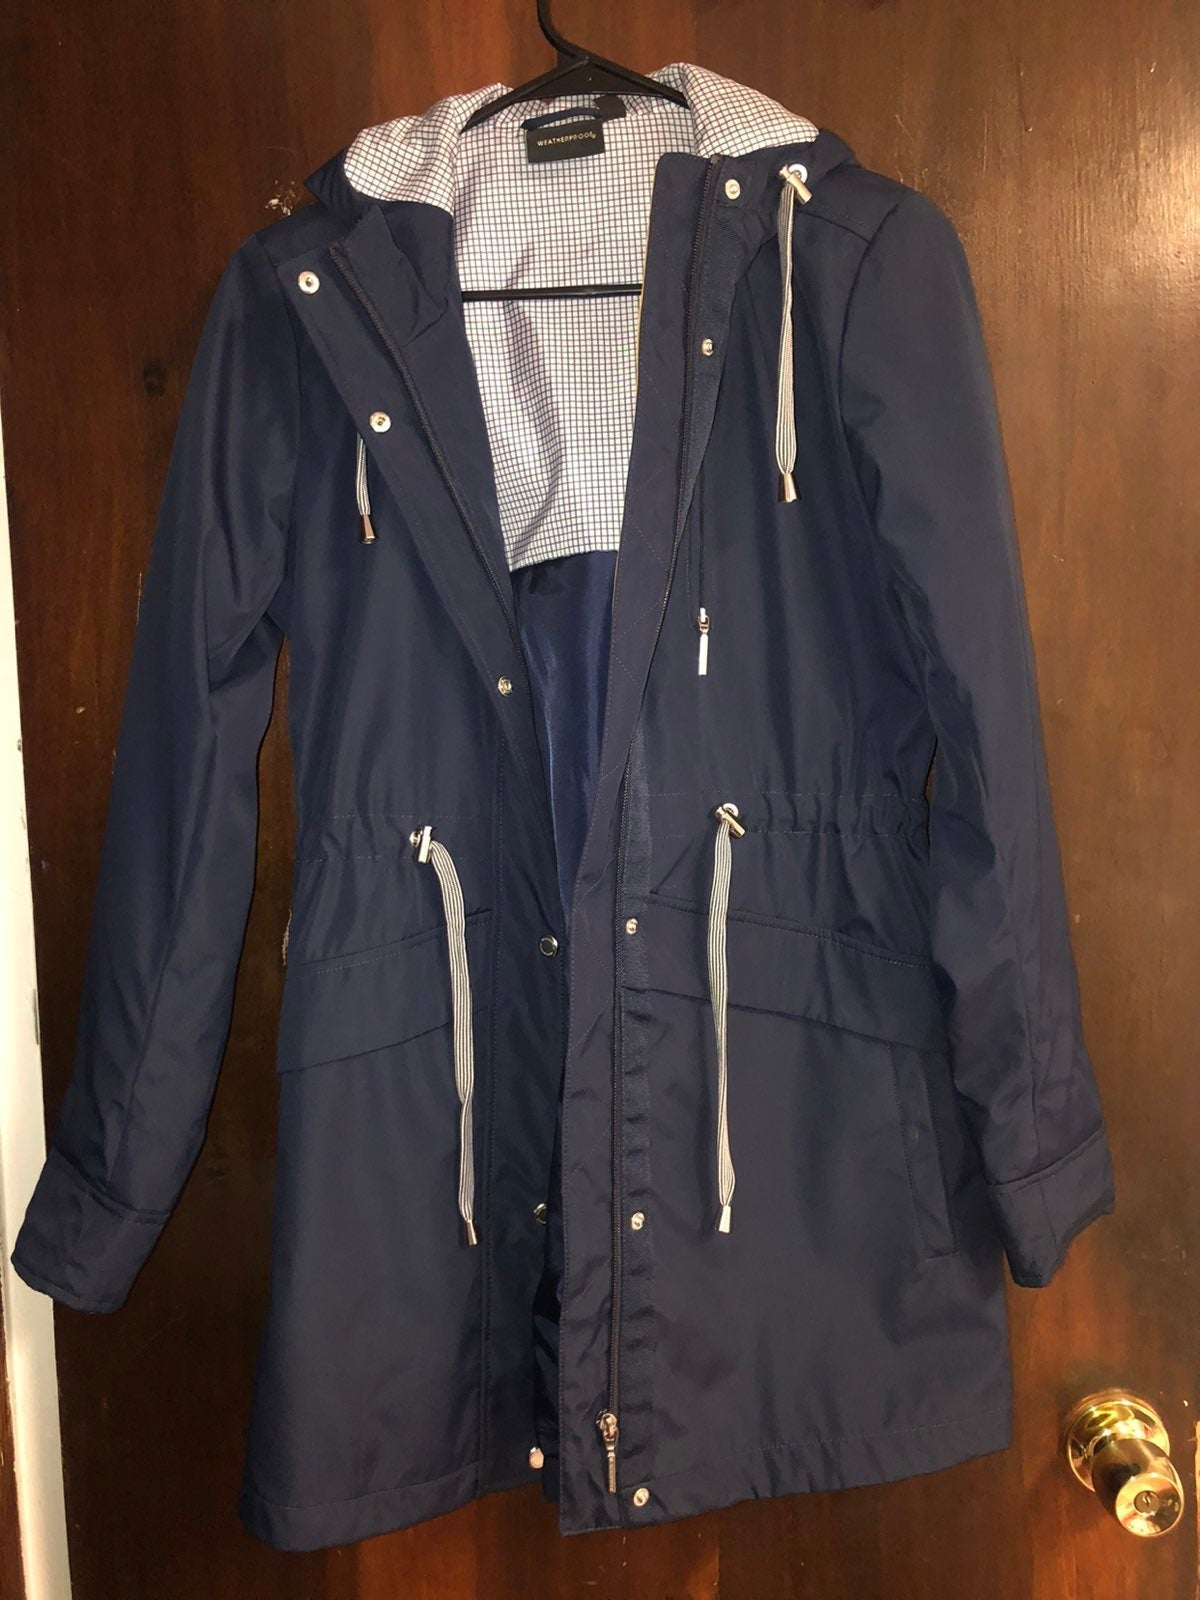 Weatherproof Rain jacket - Small